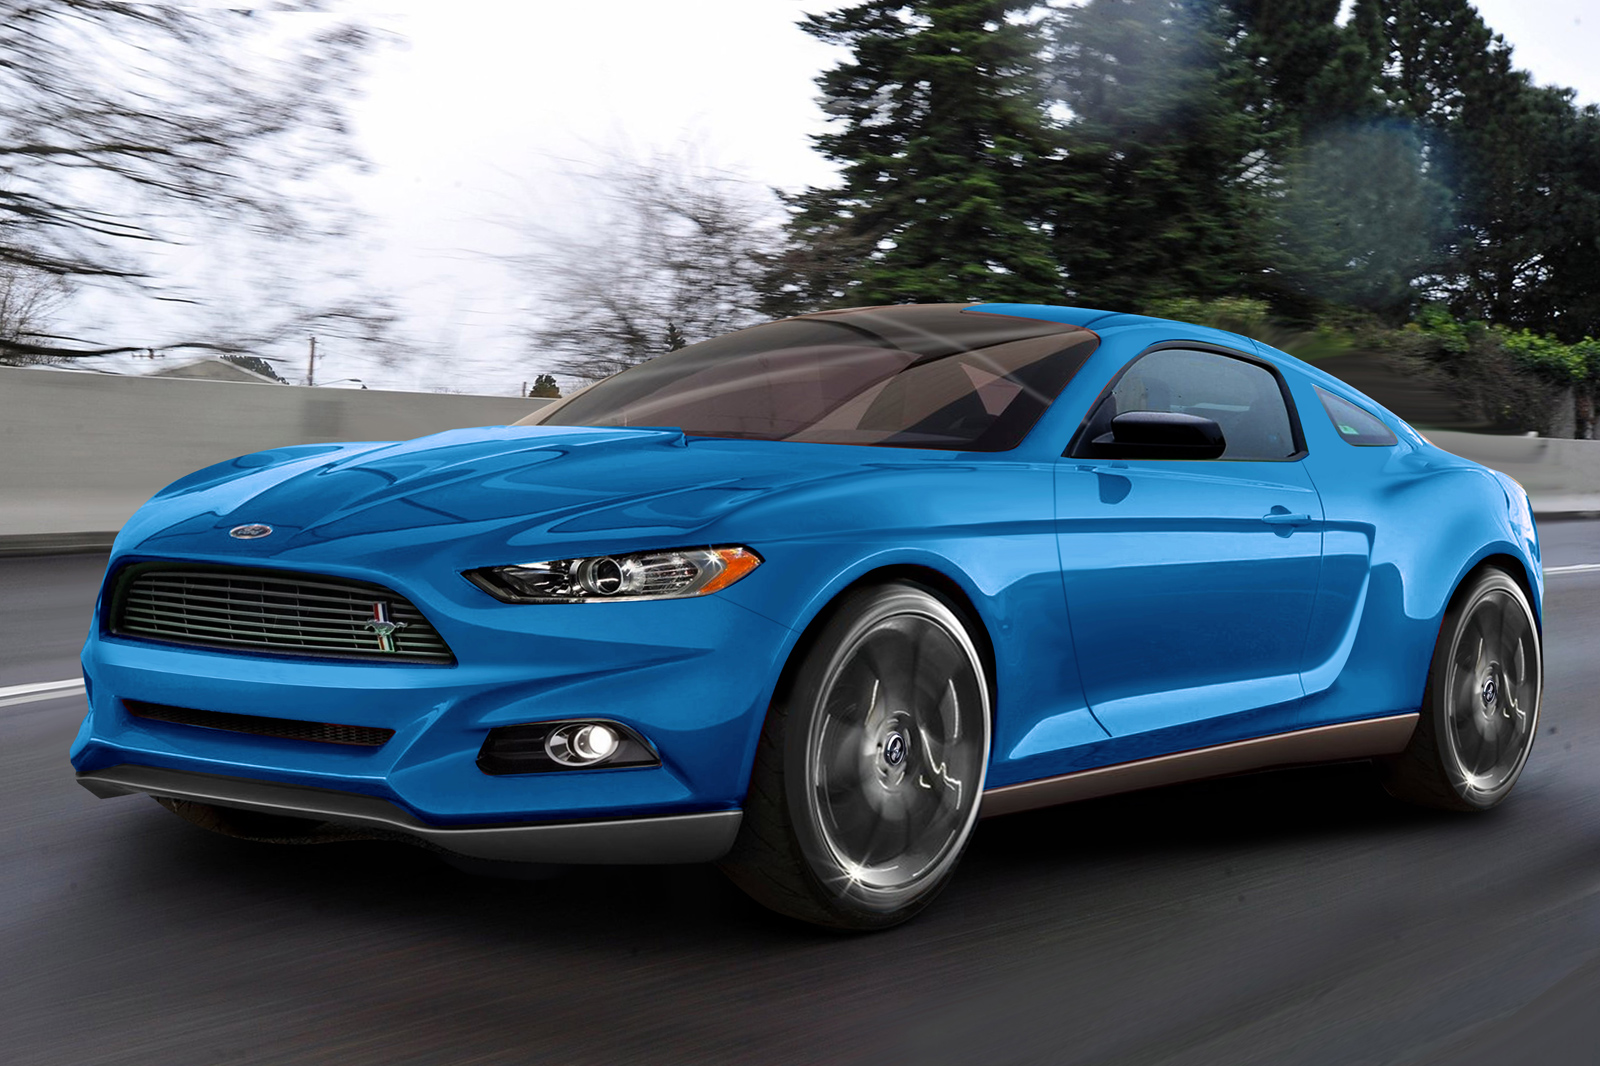 2015 Ford Mustang Wallpaper For Free Download Wallpaper